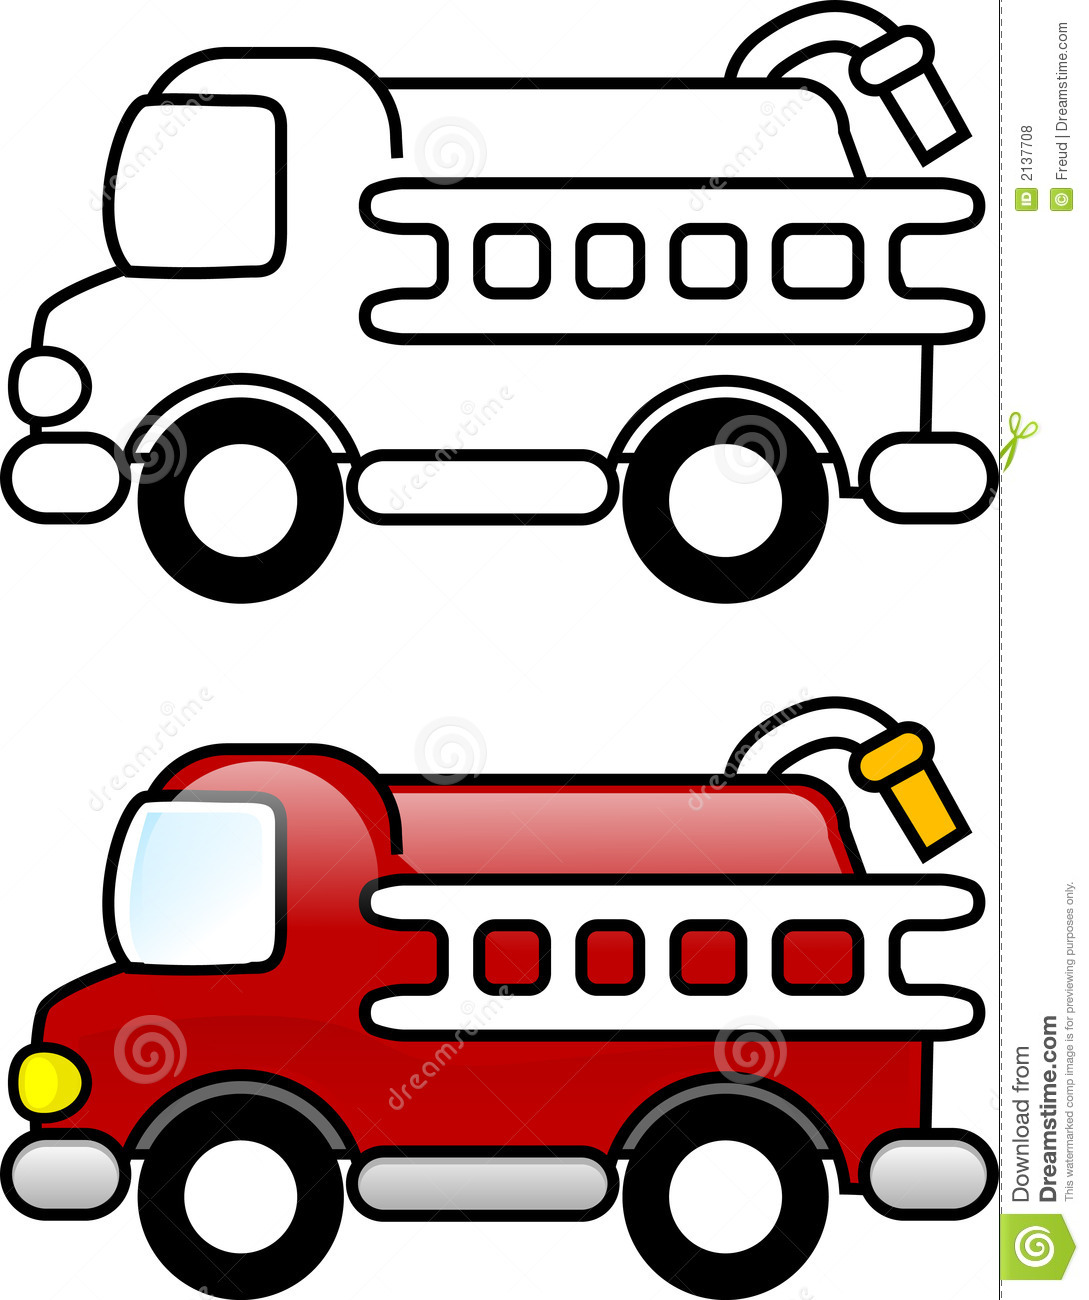 Fire Truck clipart simple #11